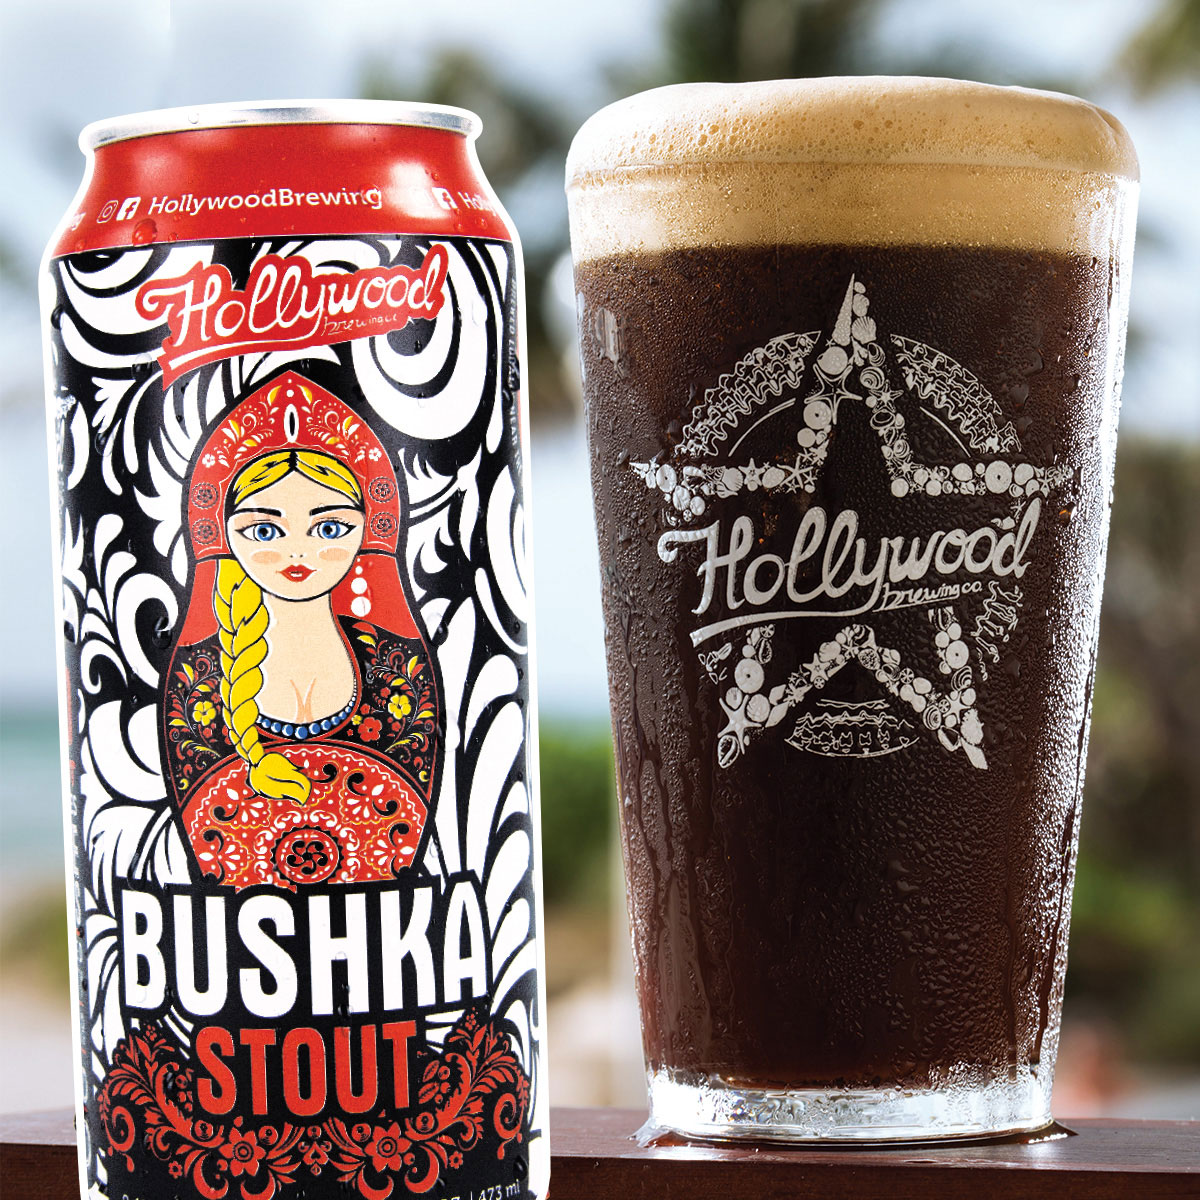 http://hollywood.beer/wp-content/uploads/2017/10/BushkaStout_HollywoodBrewing.jpg